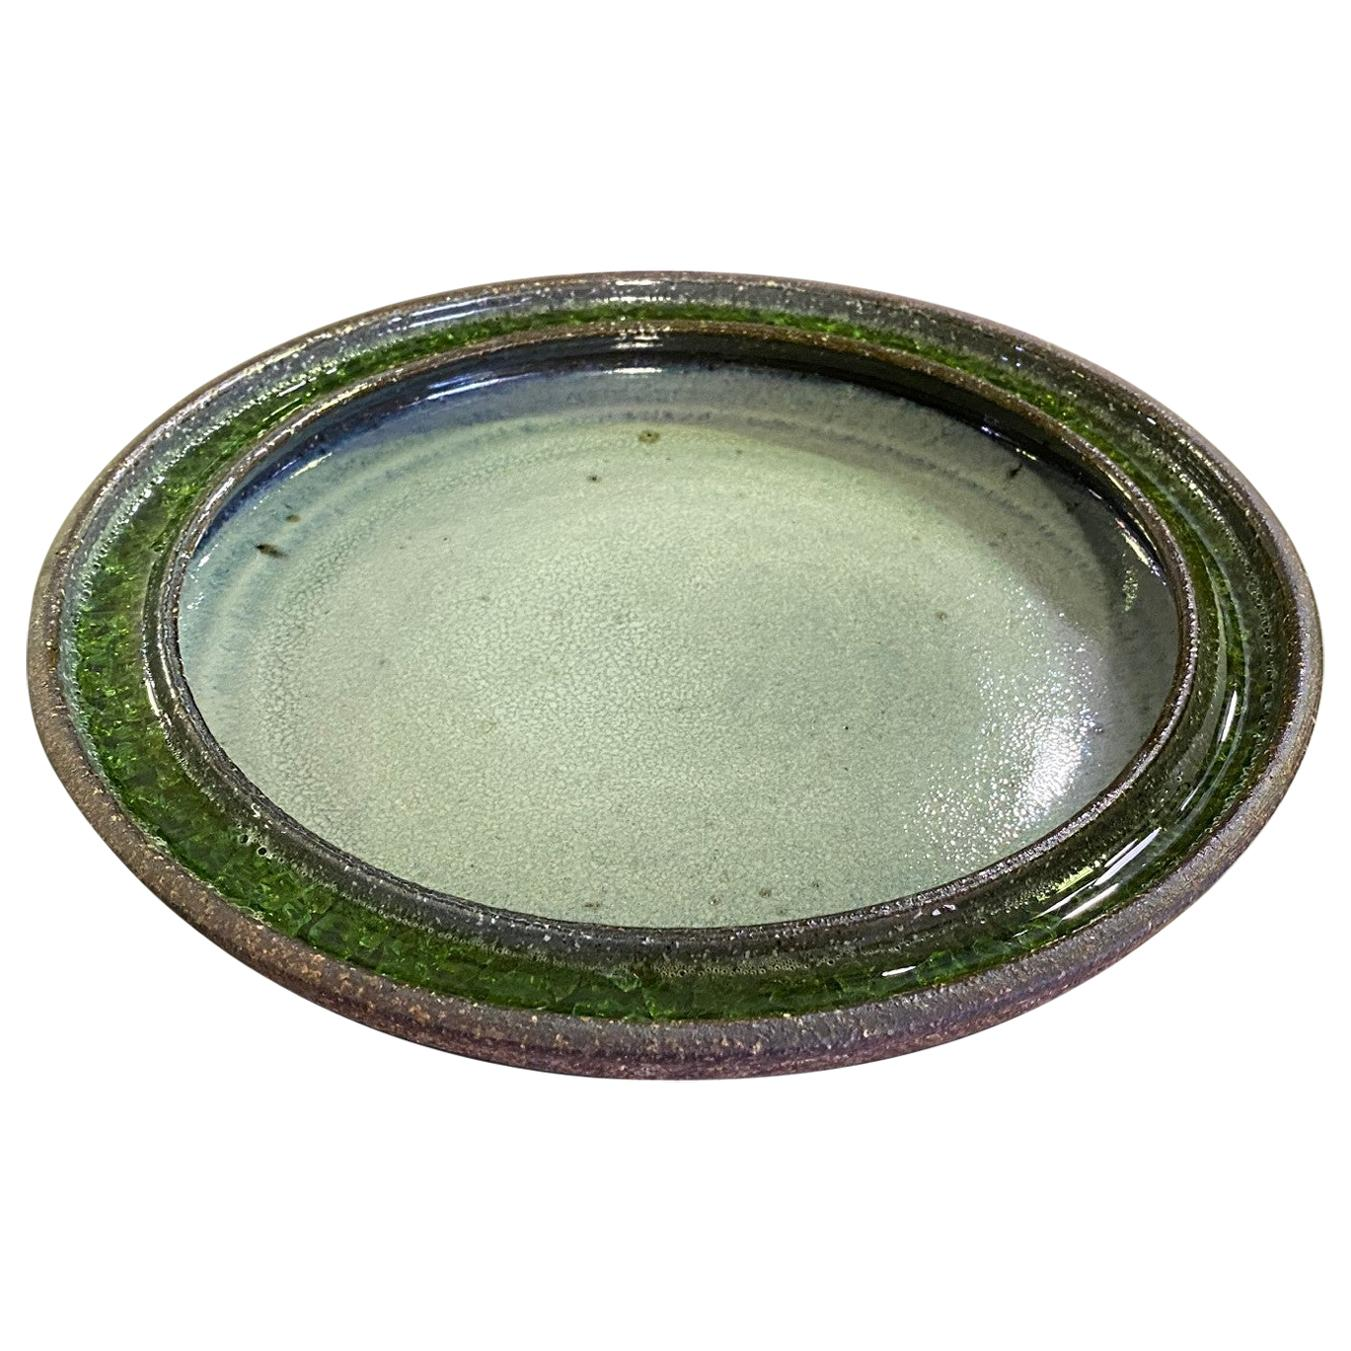 Raul Coronel Signed Mid-Century Modern Large Heavy Ceramic Pottery Bowl, 1960s